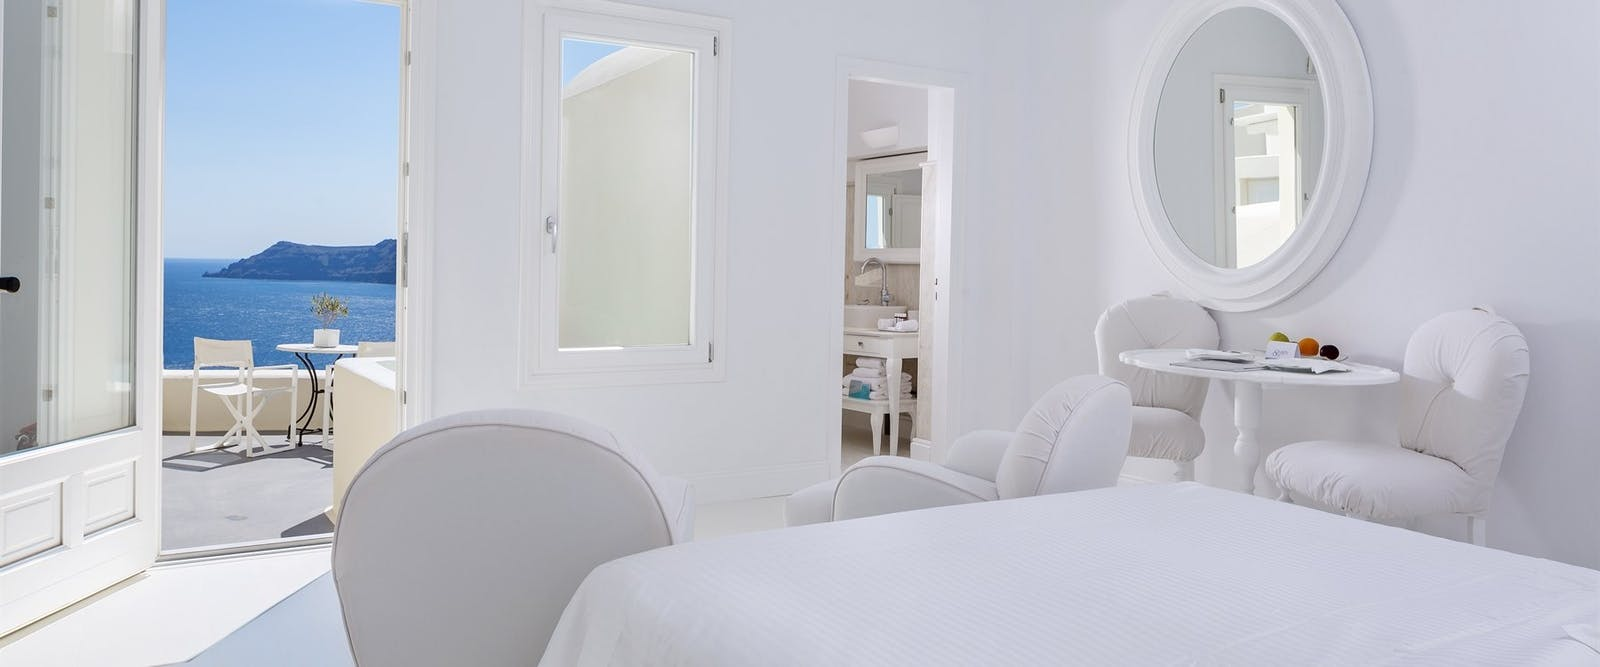 Bedroom with Terrace at Canaves Oia Hotel, Santorini, Greece